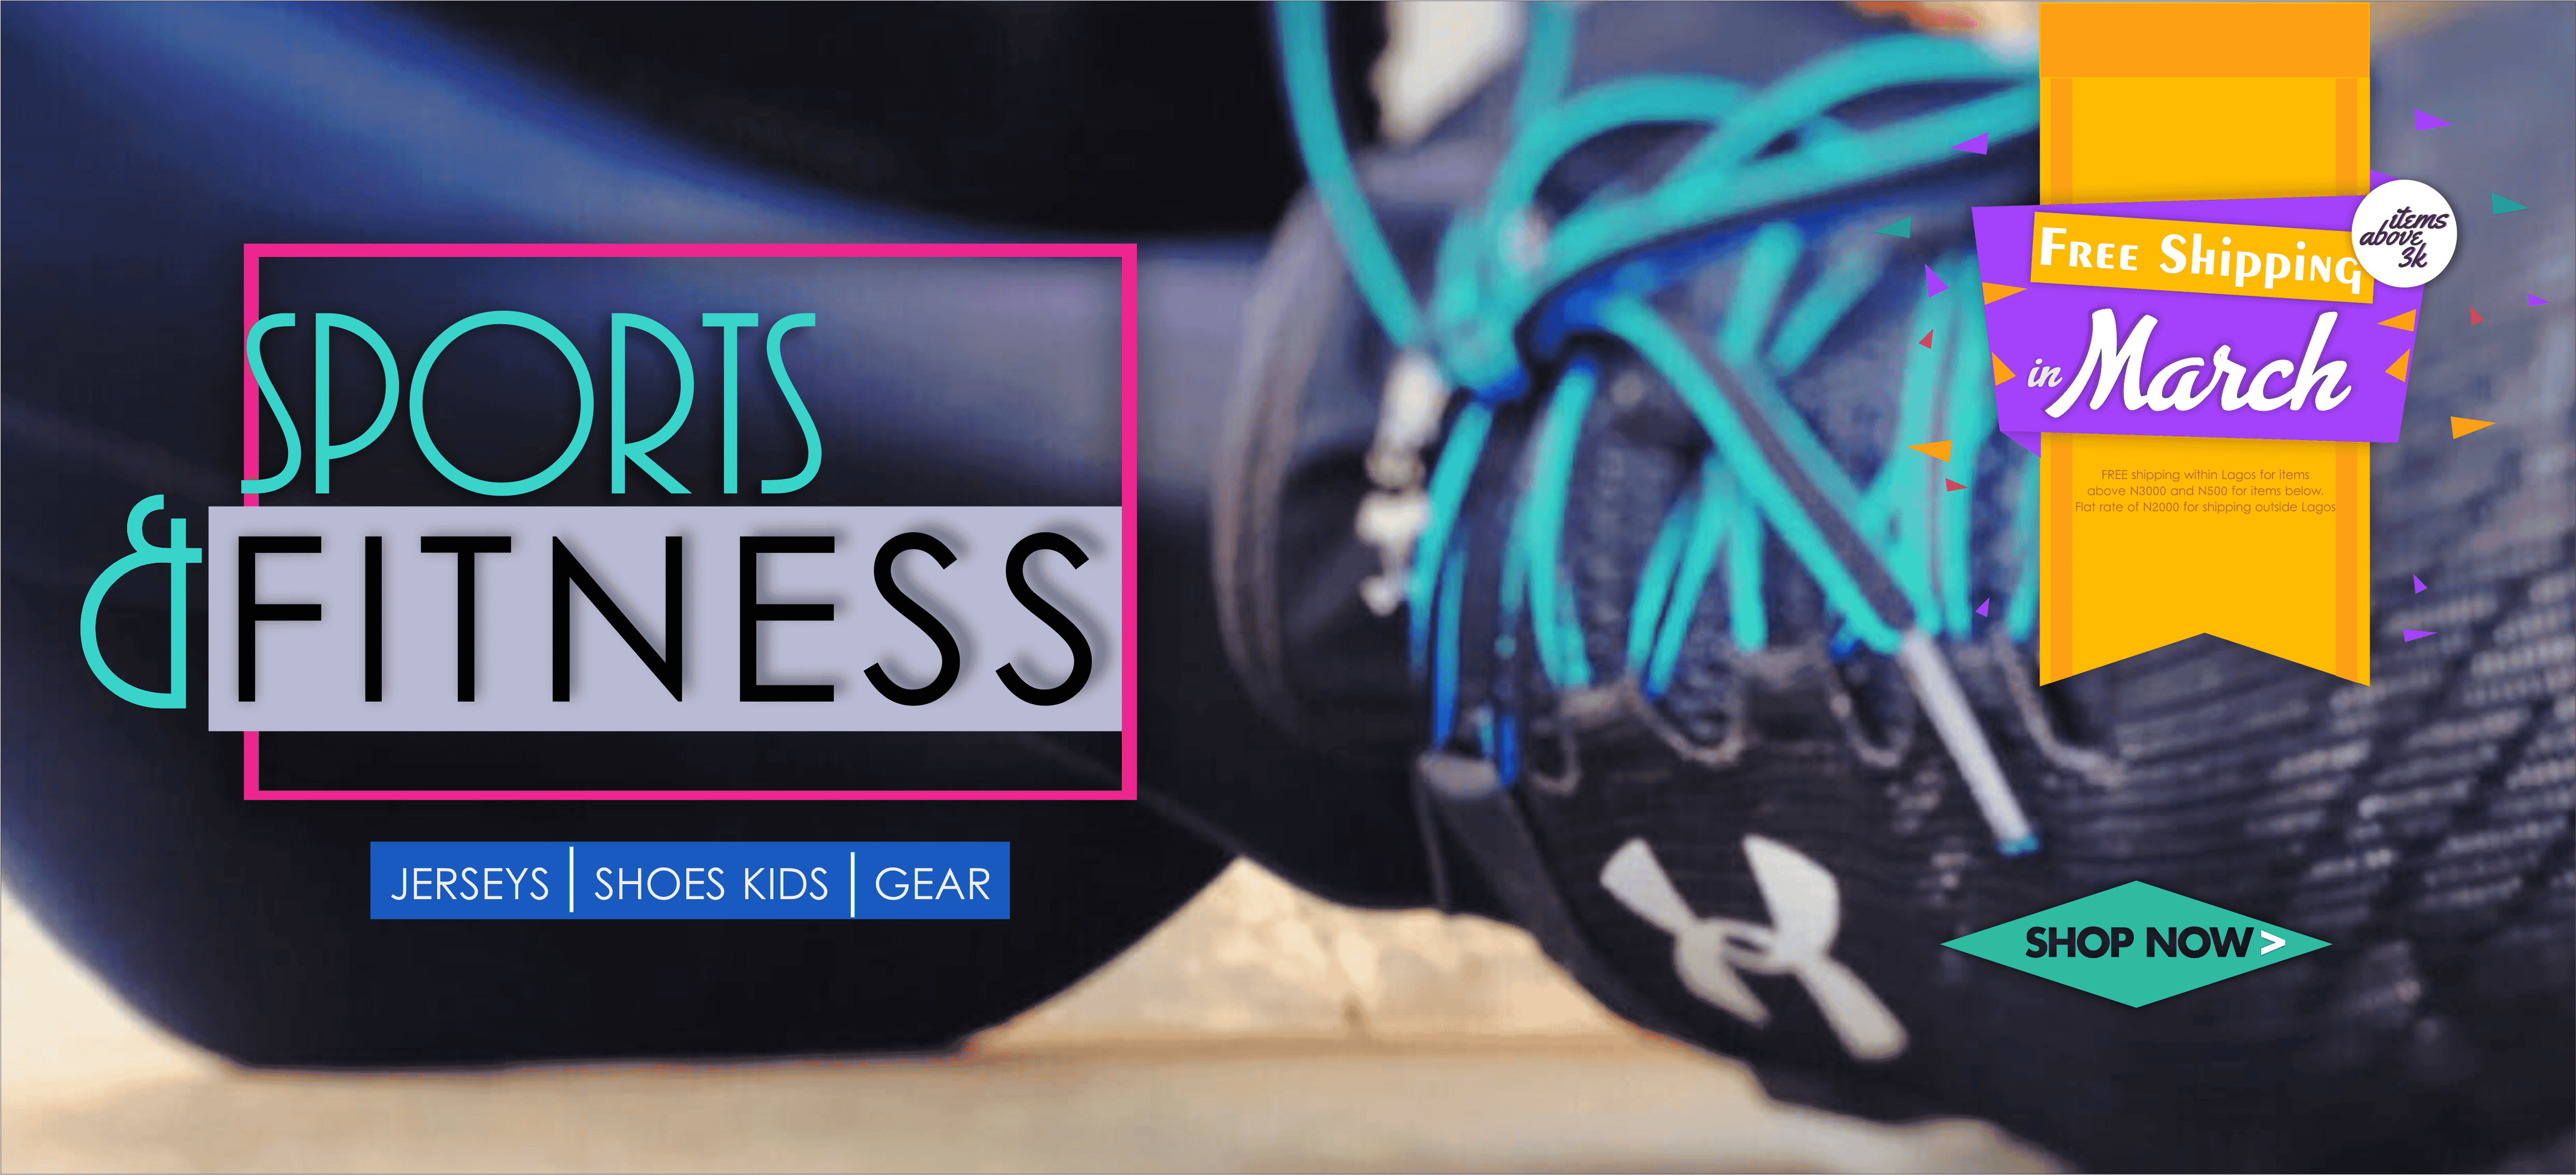 shop sports and fitness